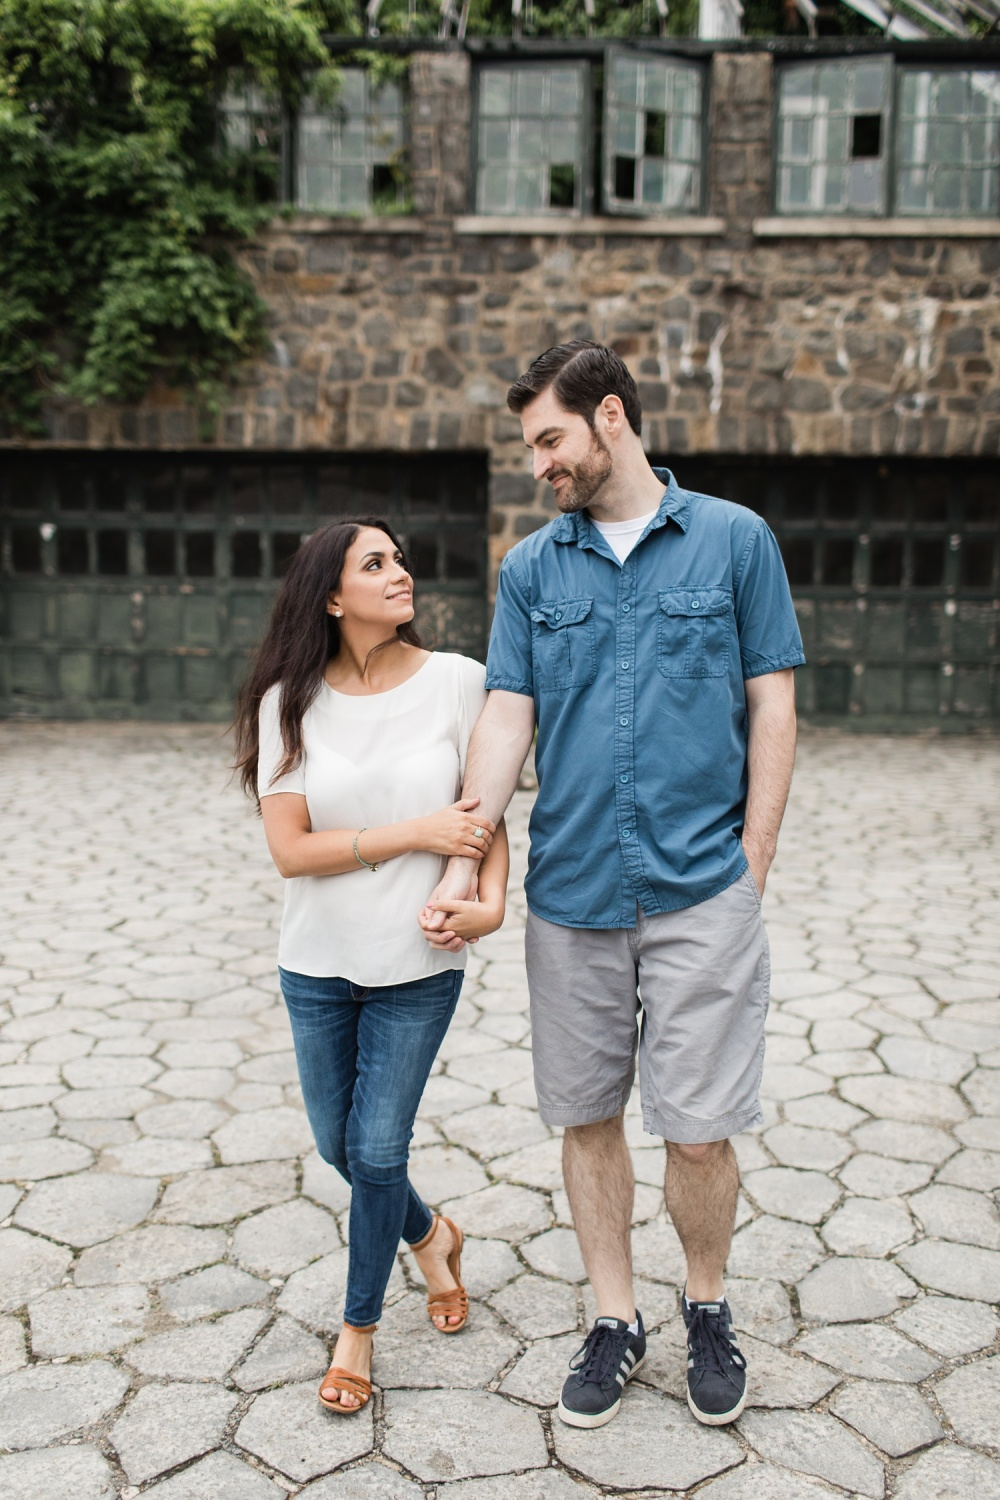 Goodstay Gardens Engagement Photography | Wilmington DE Wedding Photographer | Natalie and Rich